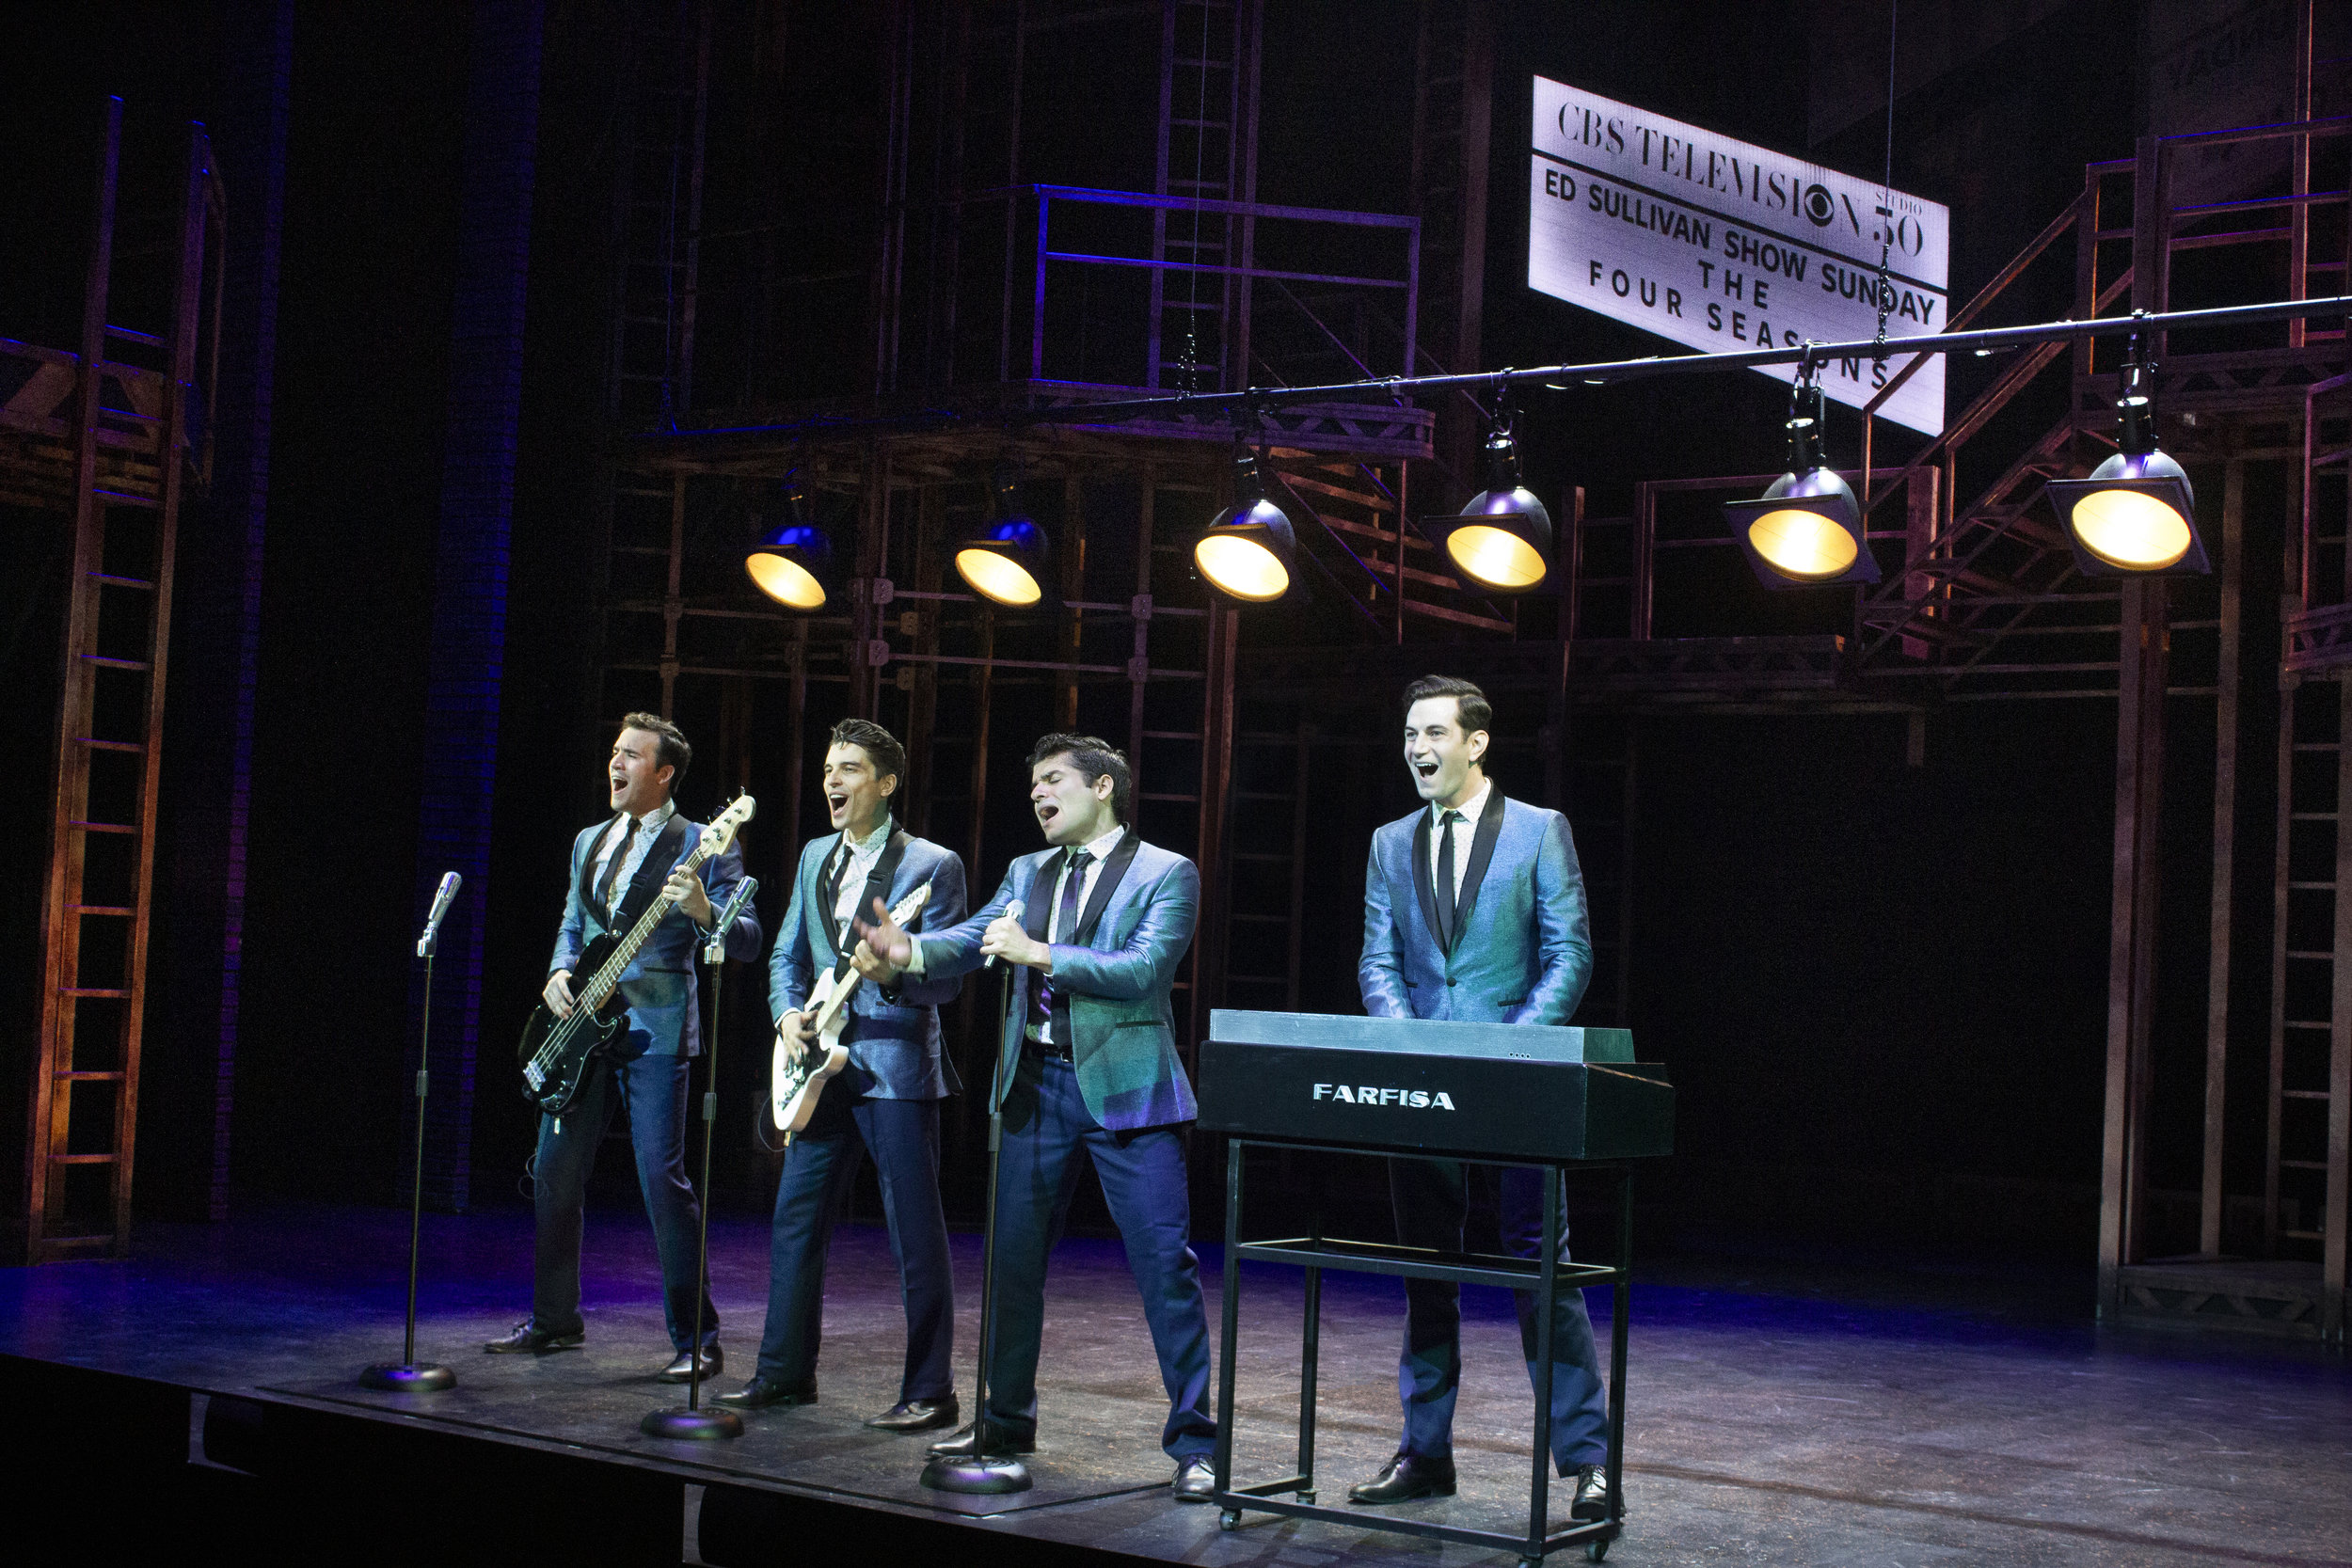 Matthew Amira, Matt Magnusson, Jonathan Mousset, and Andy Christopher in Jersey Boys at the Ogunquit Playhouse. Photo by Morgan Gavaletz LaMontagne.